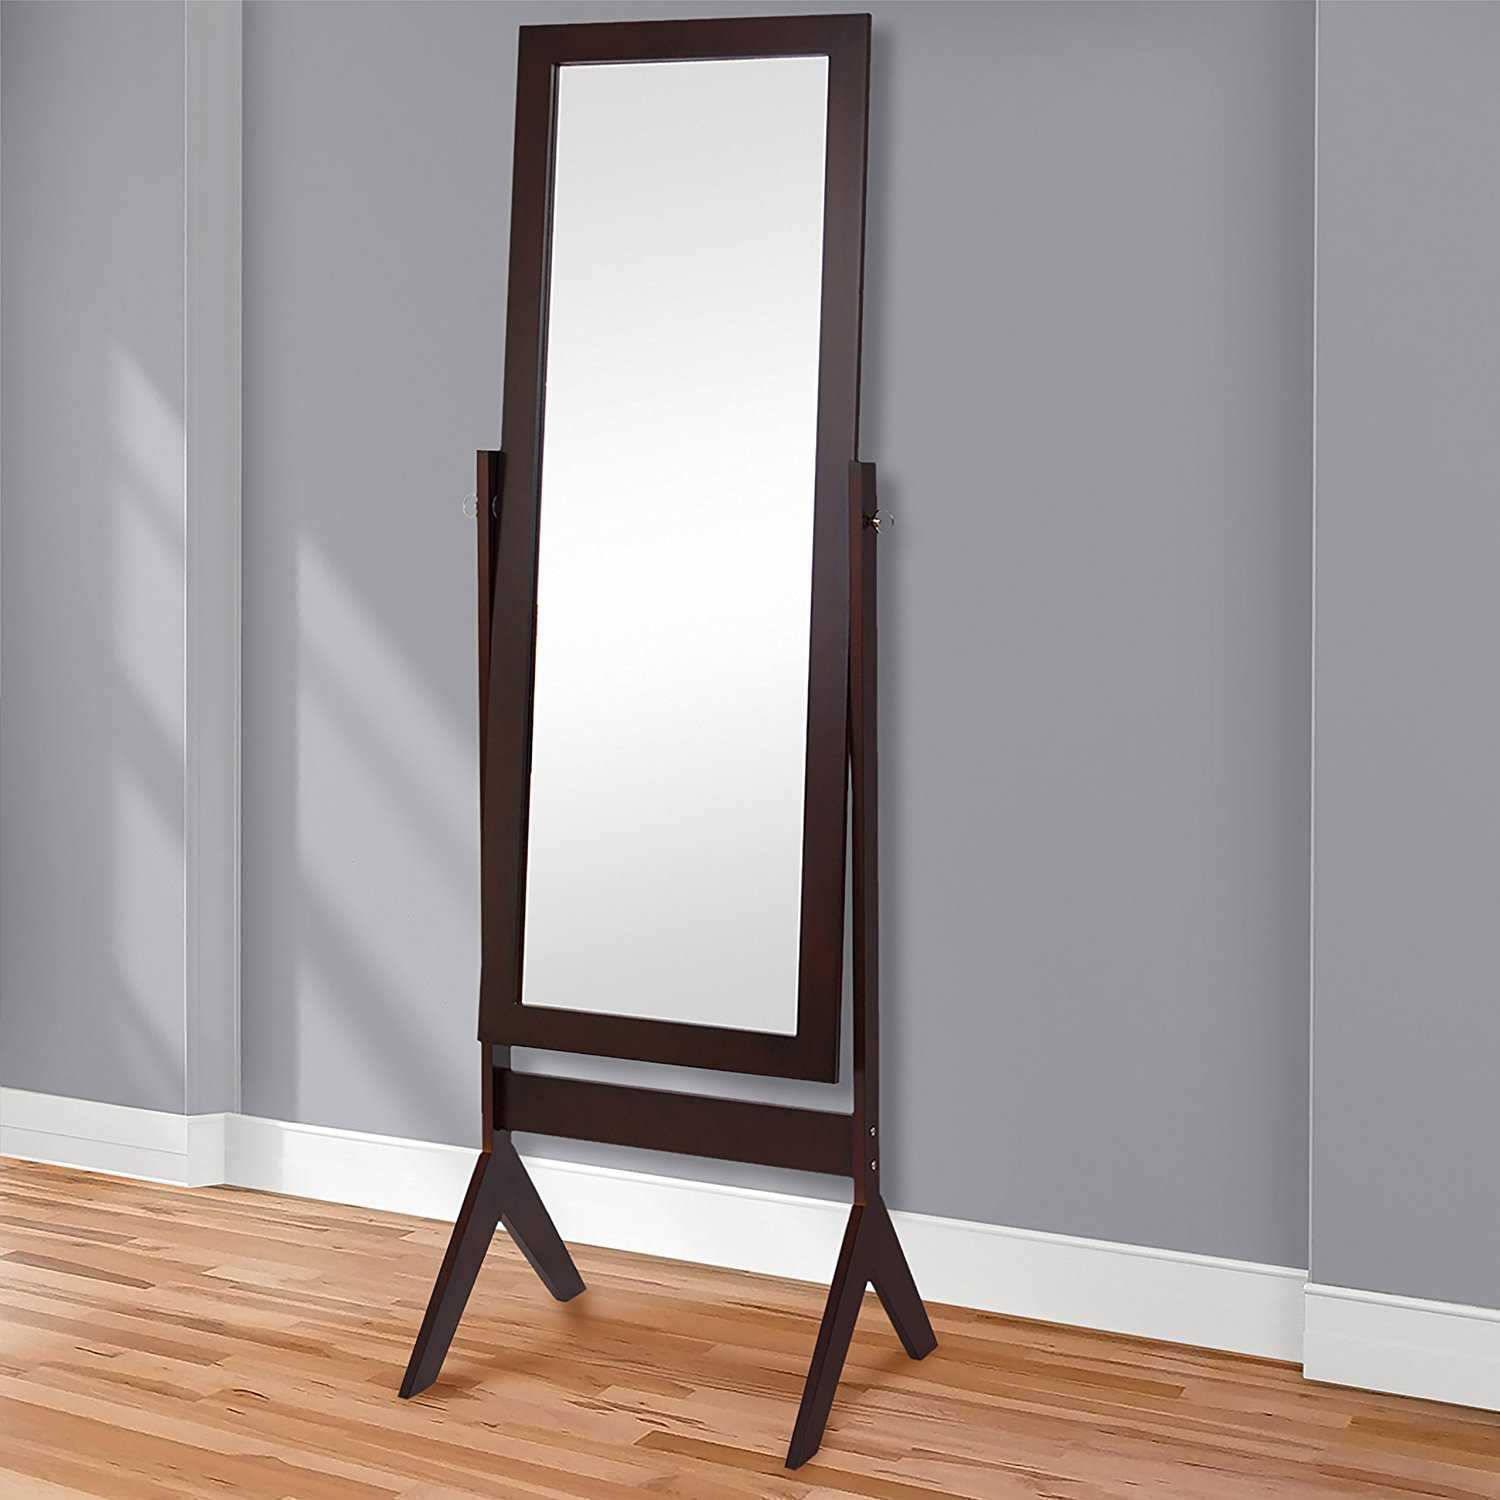 Floor Standing Mirror Beautiful Standing Long Mirrors Bedroom Sign Frame Pantry 2018 Also